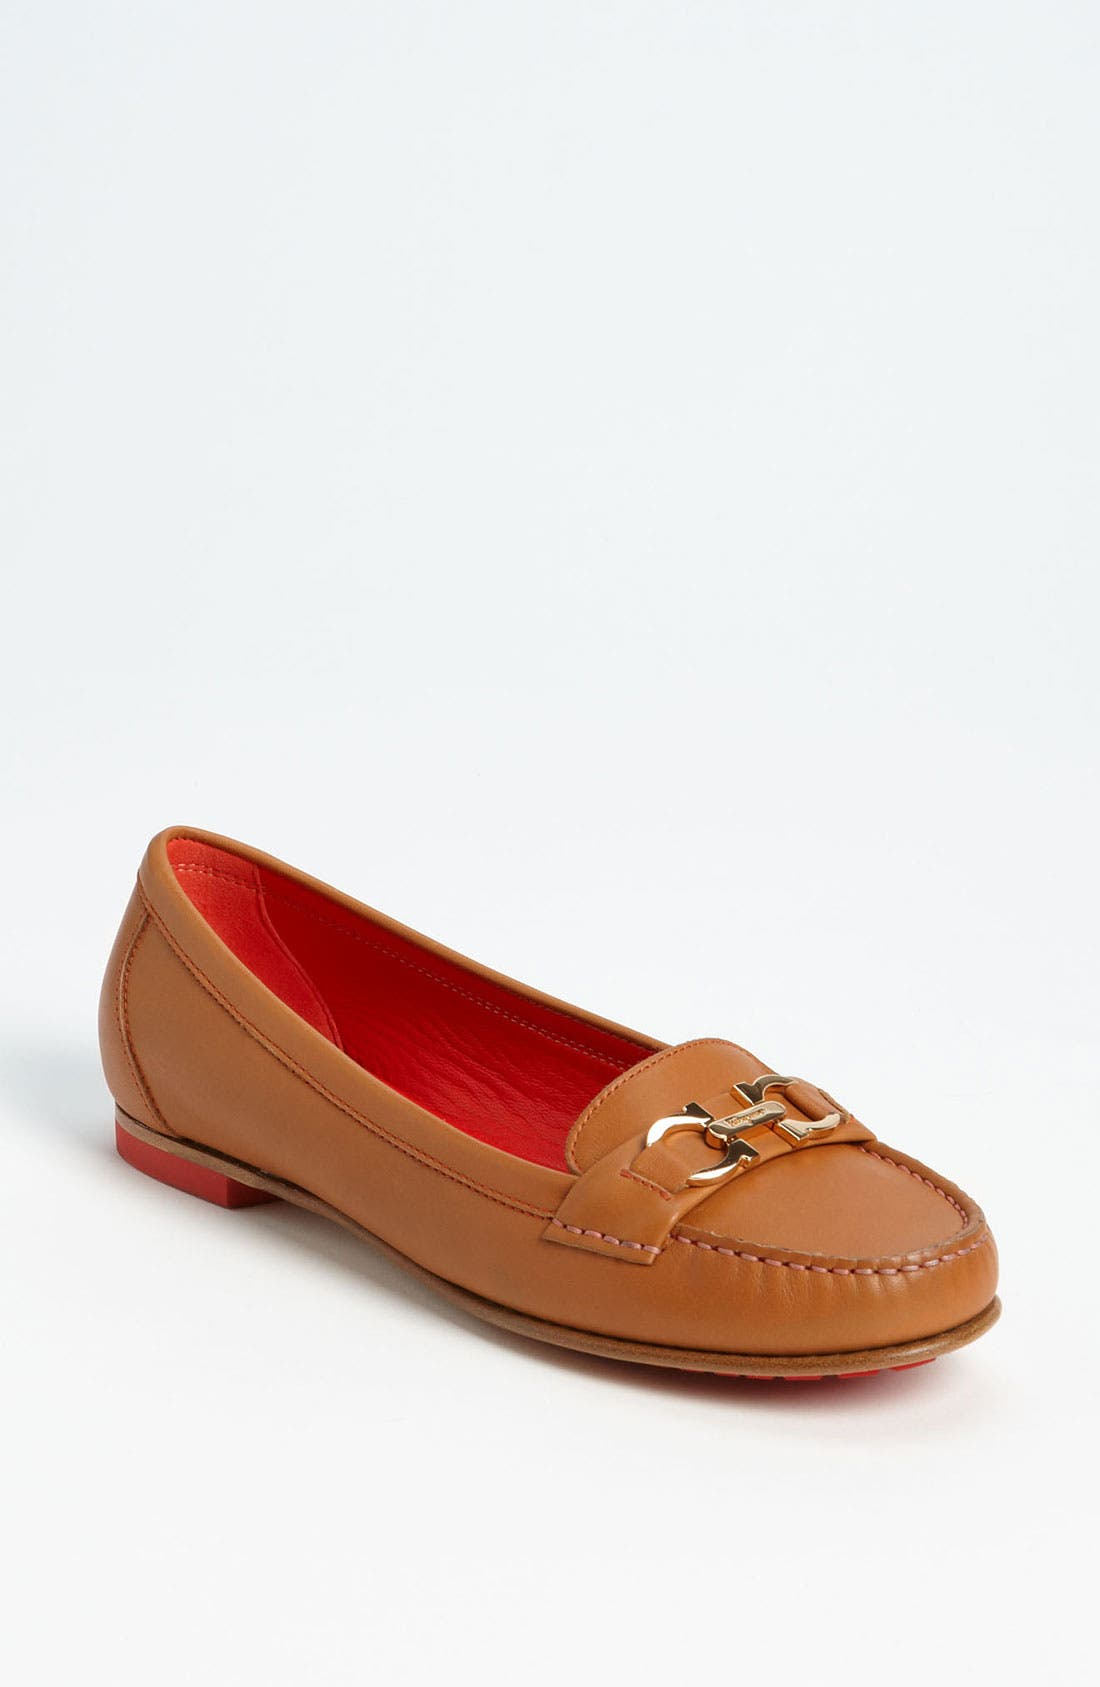 Main Image - Salvatore Ferragamo 'Simba' Loafer